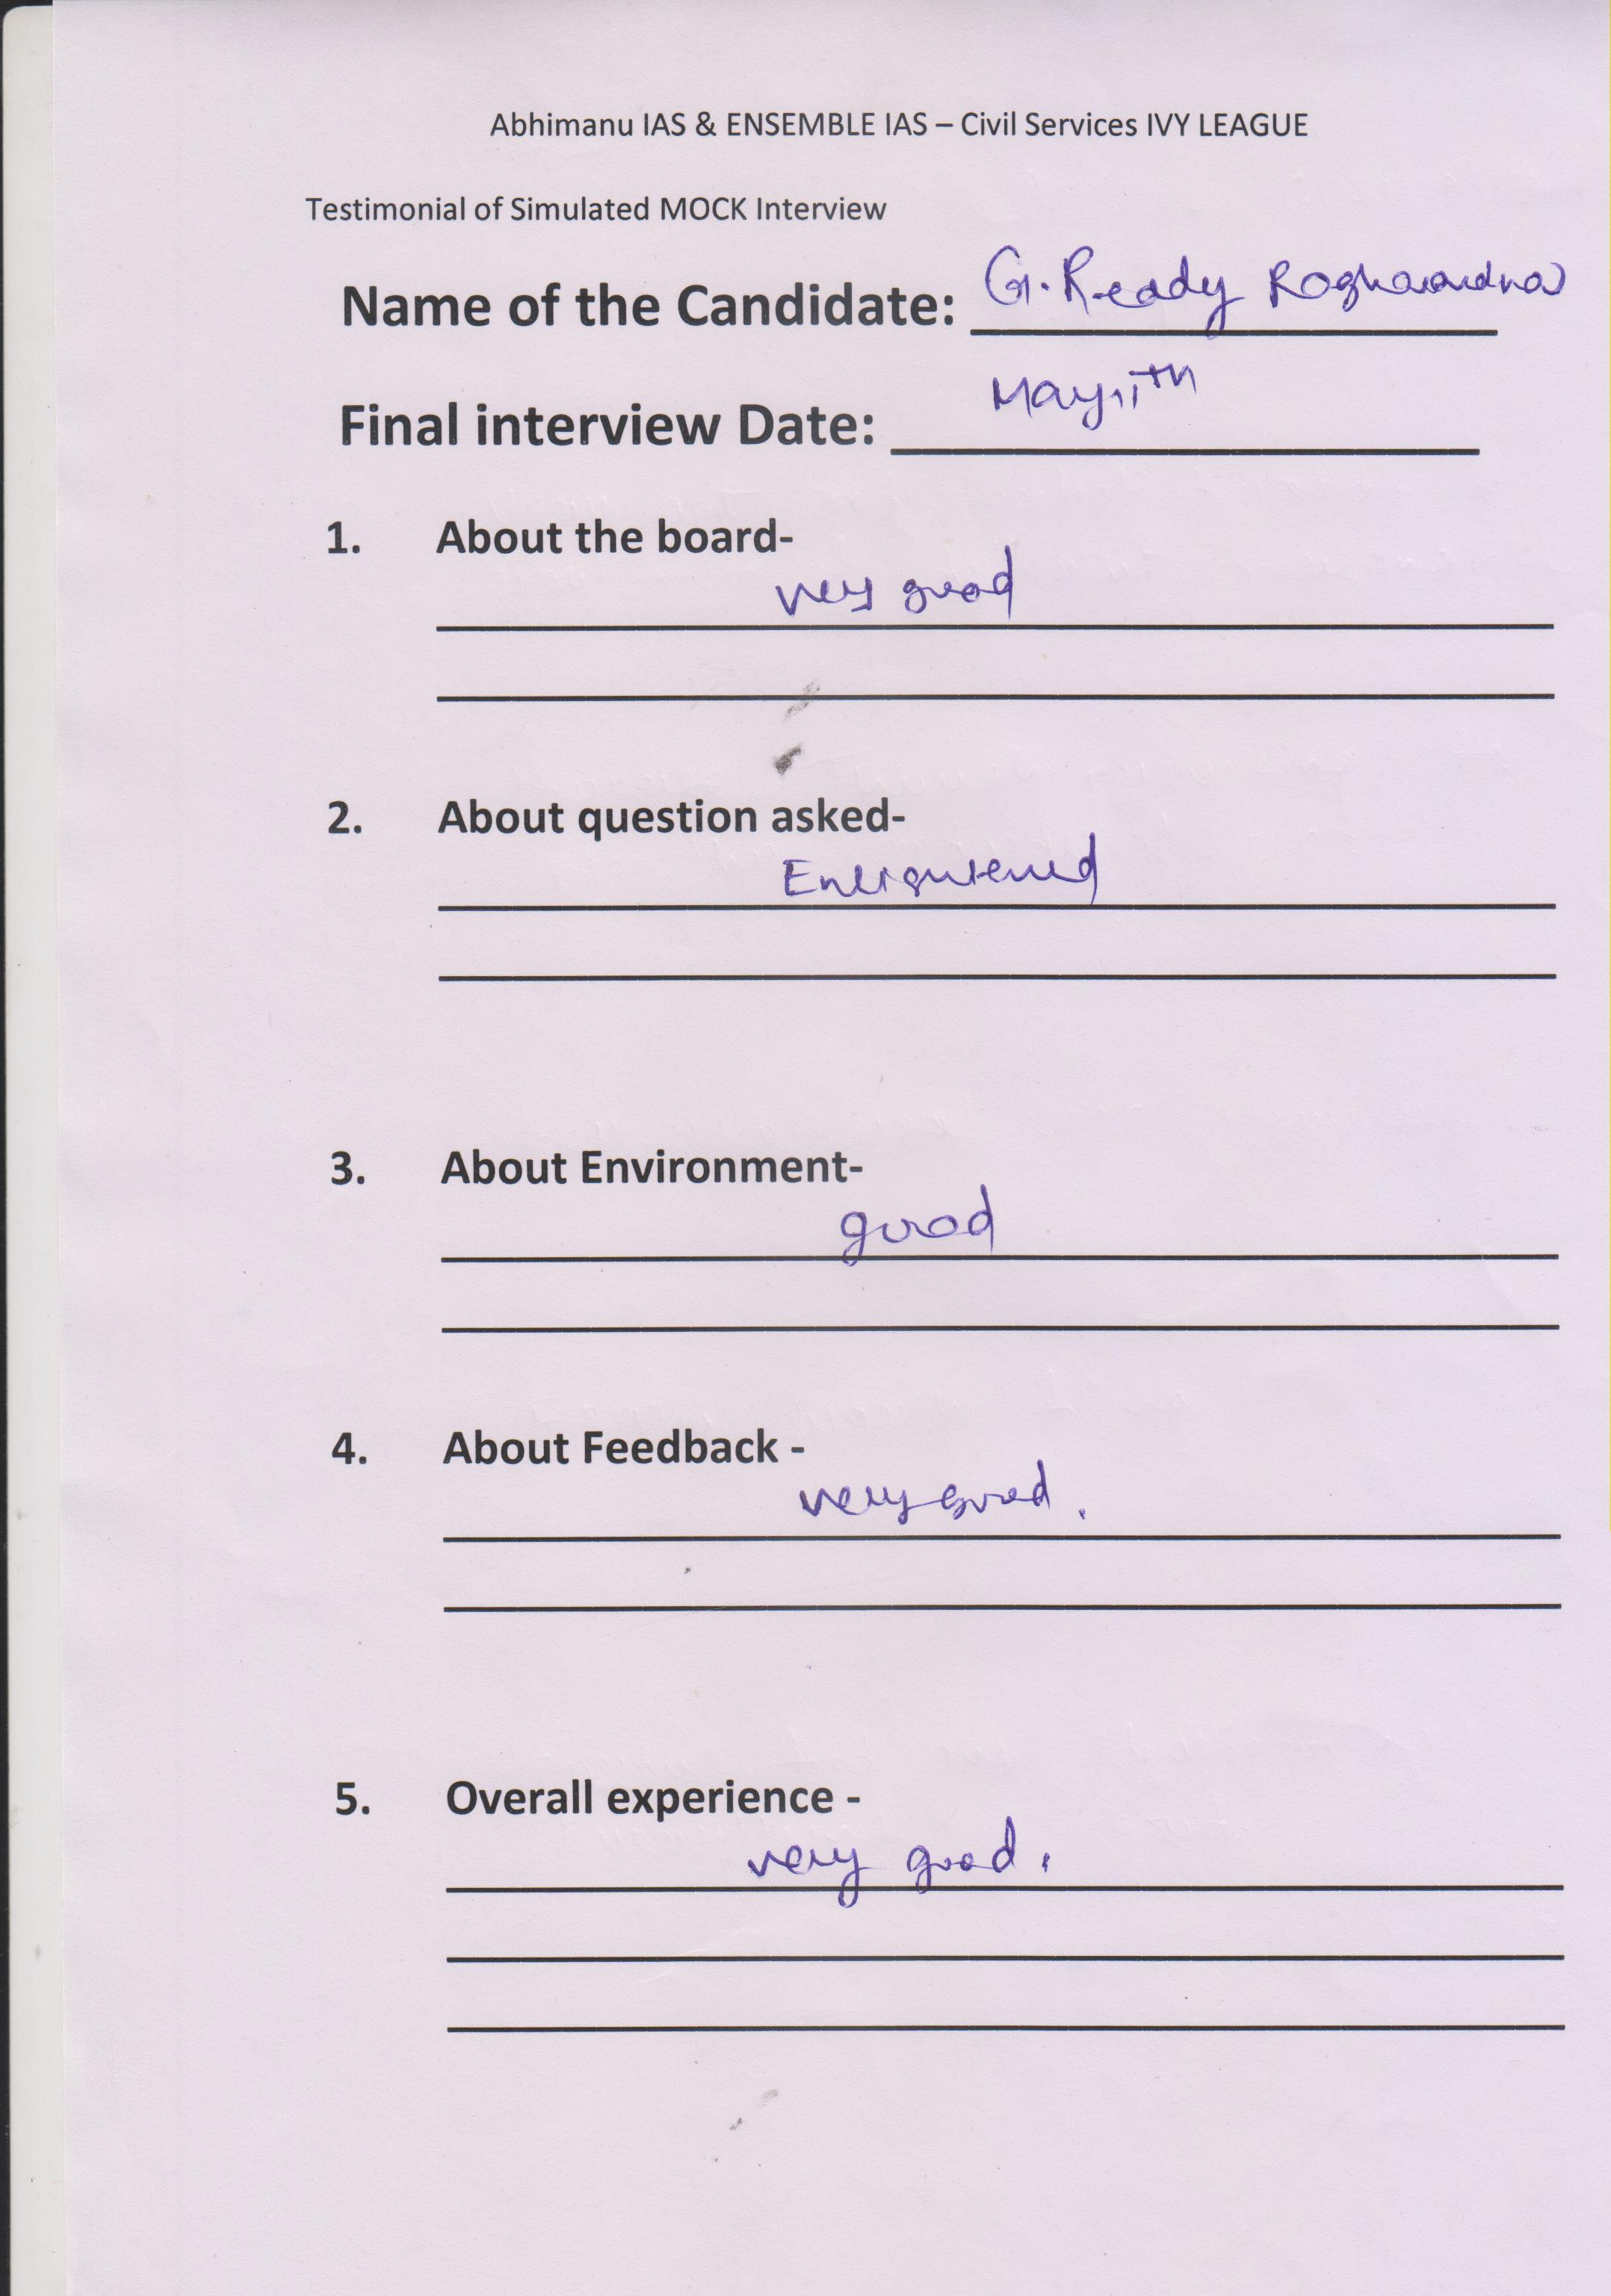 Interview Testimonial By- G. Reddy